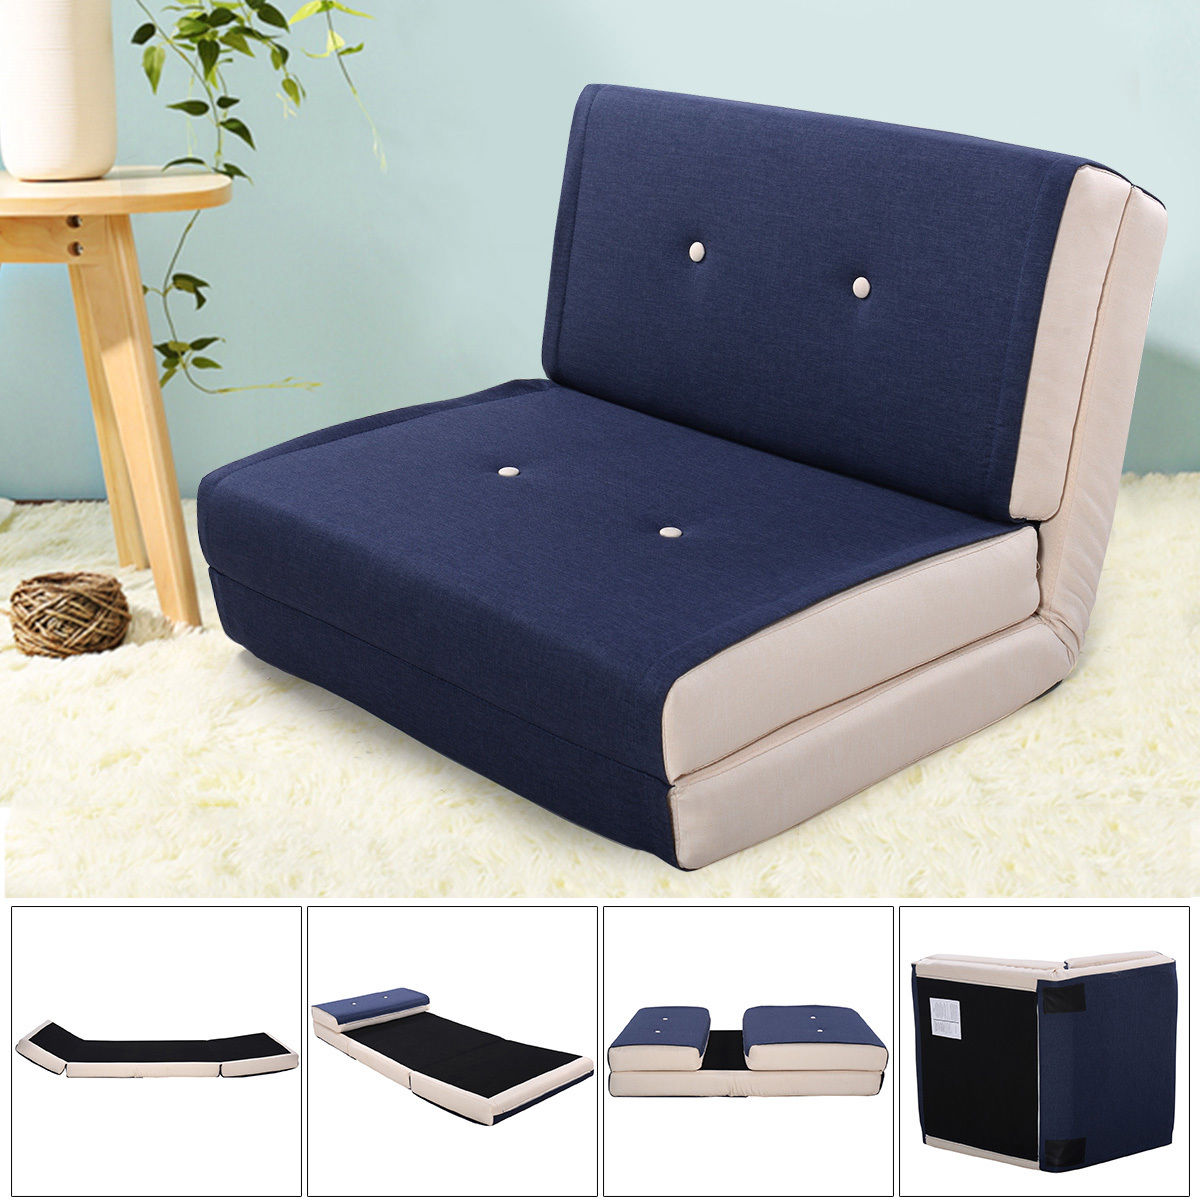 Folding Chair Bed Philippines Industrial Metal Chairs Giantex Fold Down Flip Out Lounger Convertible